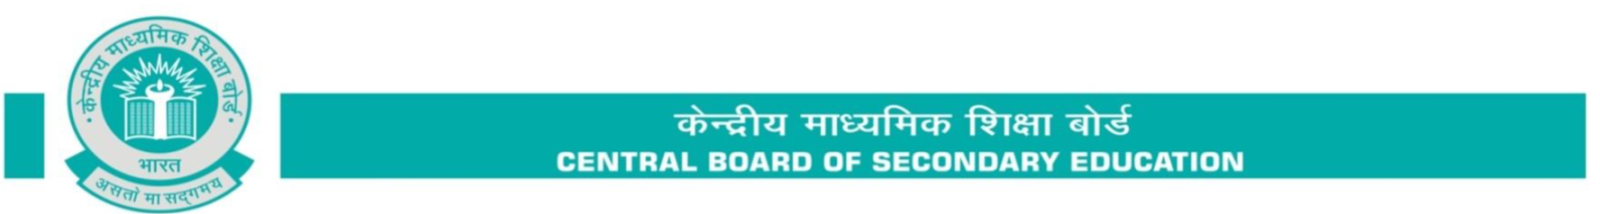 central-board-secondary-education